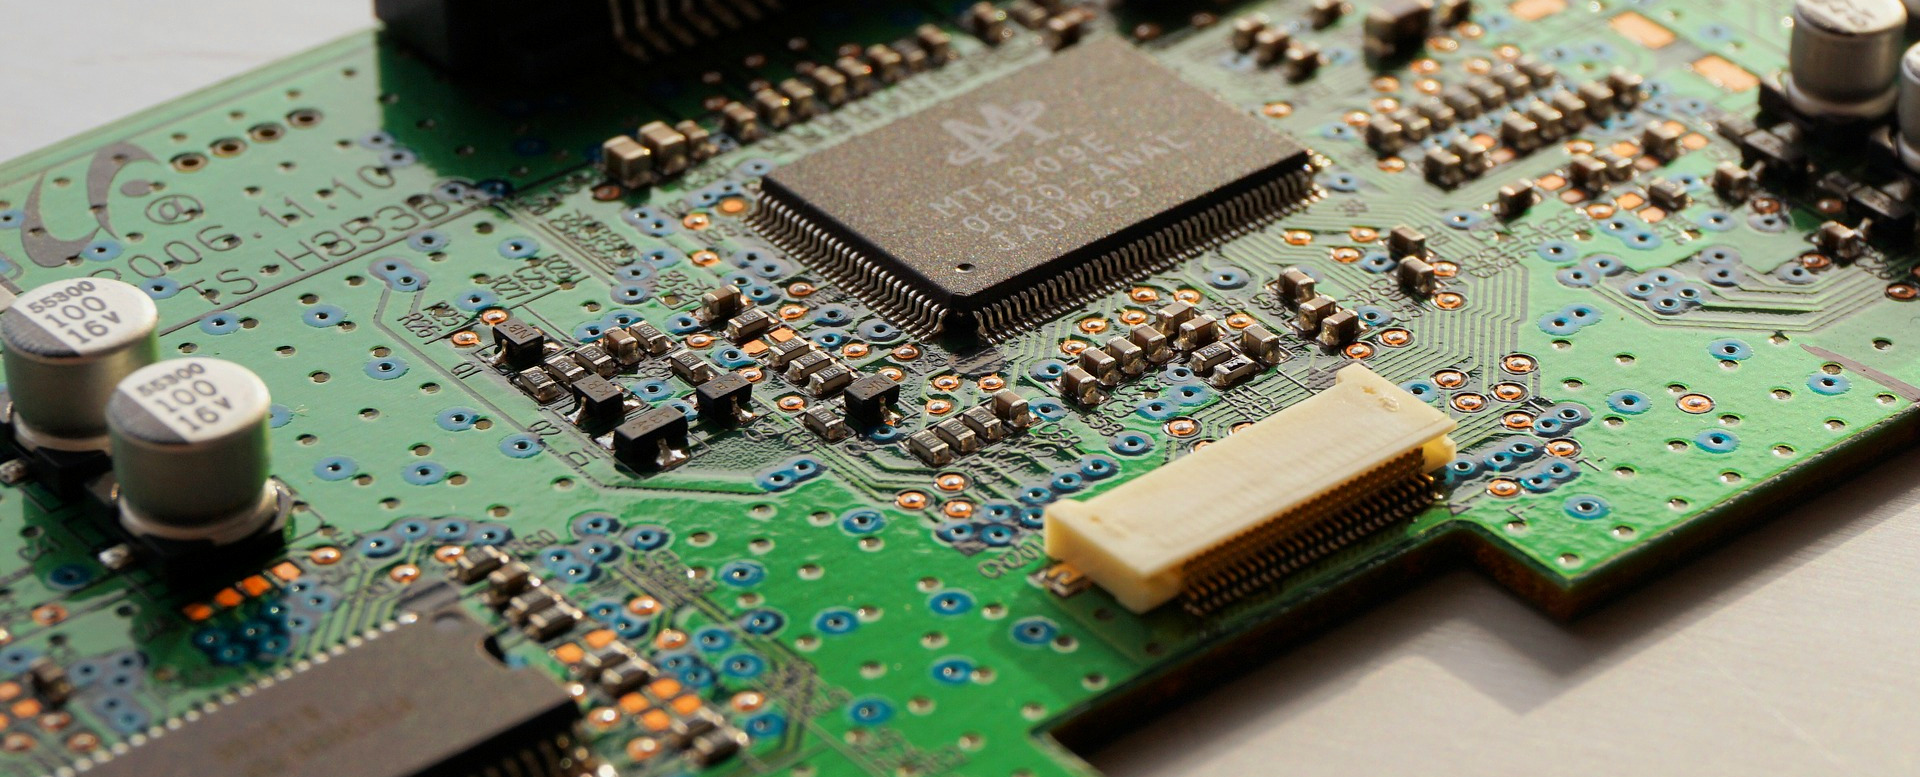 Advantages Of Turnkey Pcb Assembly Services For Start Ups 101 How To Build A Circuit Board You May Skim Through Their Section And Prototyping Get Detailed Idea The Offered